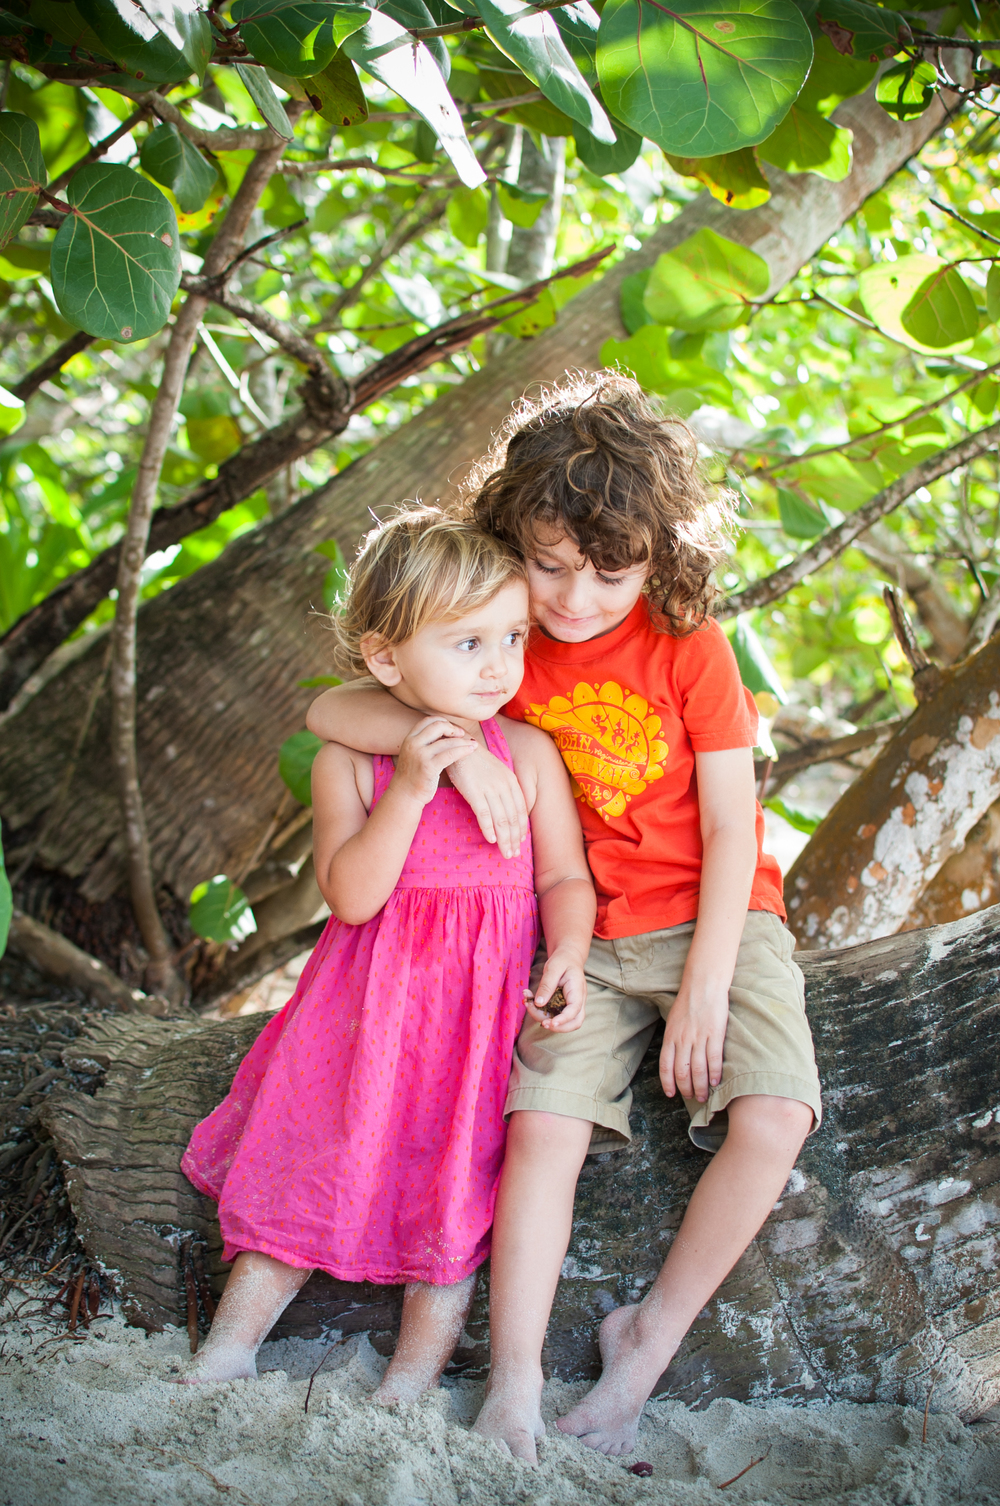 brian and tashi hanging under tree 4.jpg